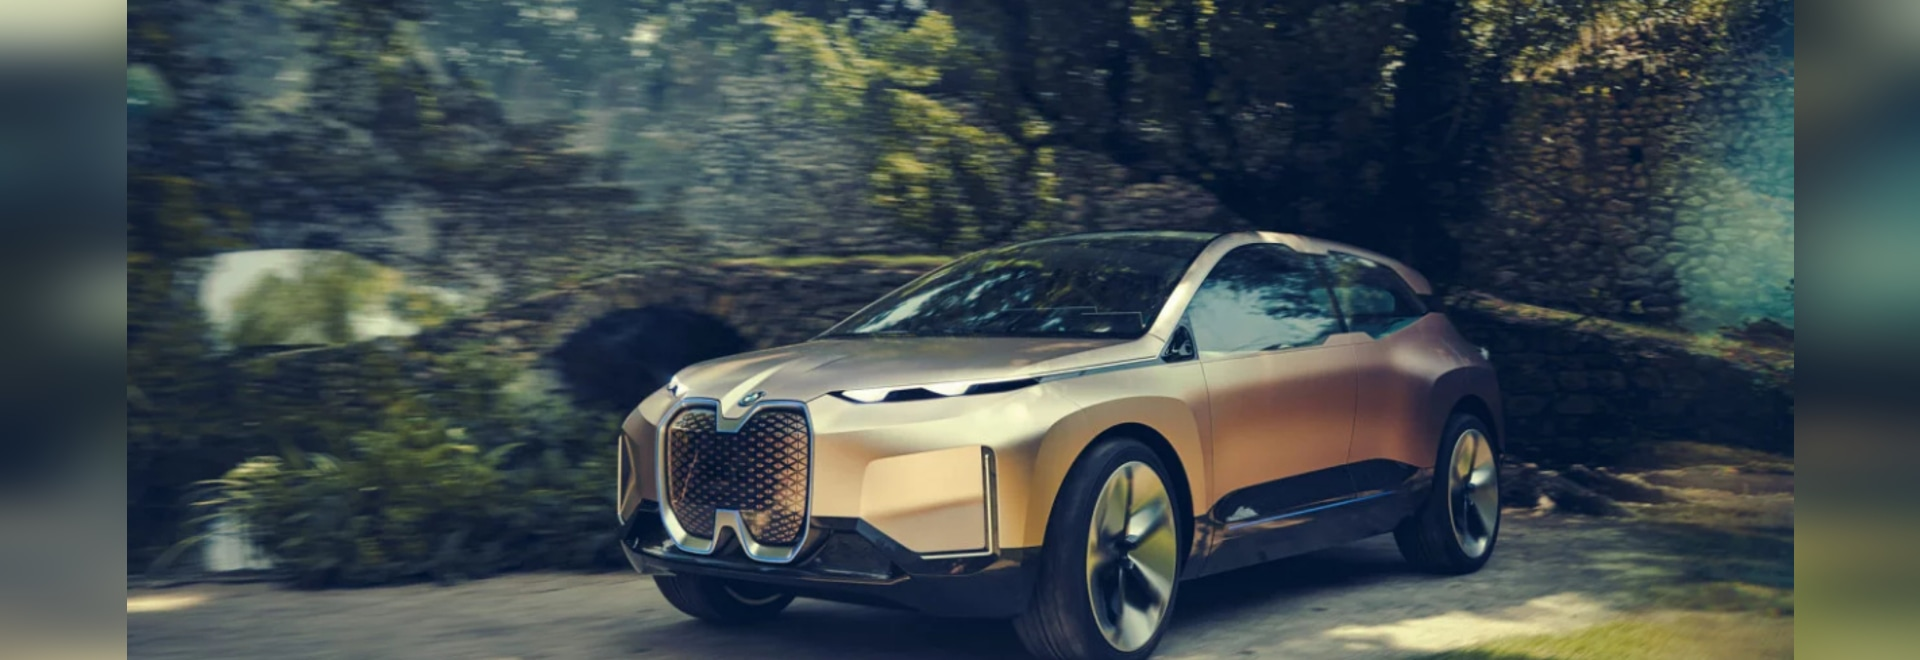 BMW's Vision iNEXT Concept Car Features a Sensor-Packed 3D Printed Grille